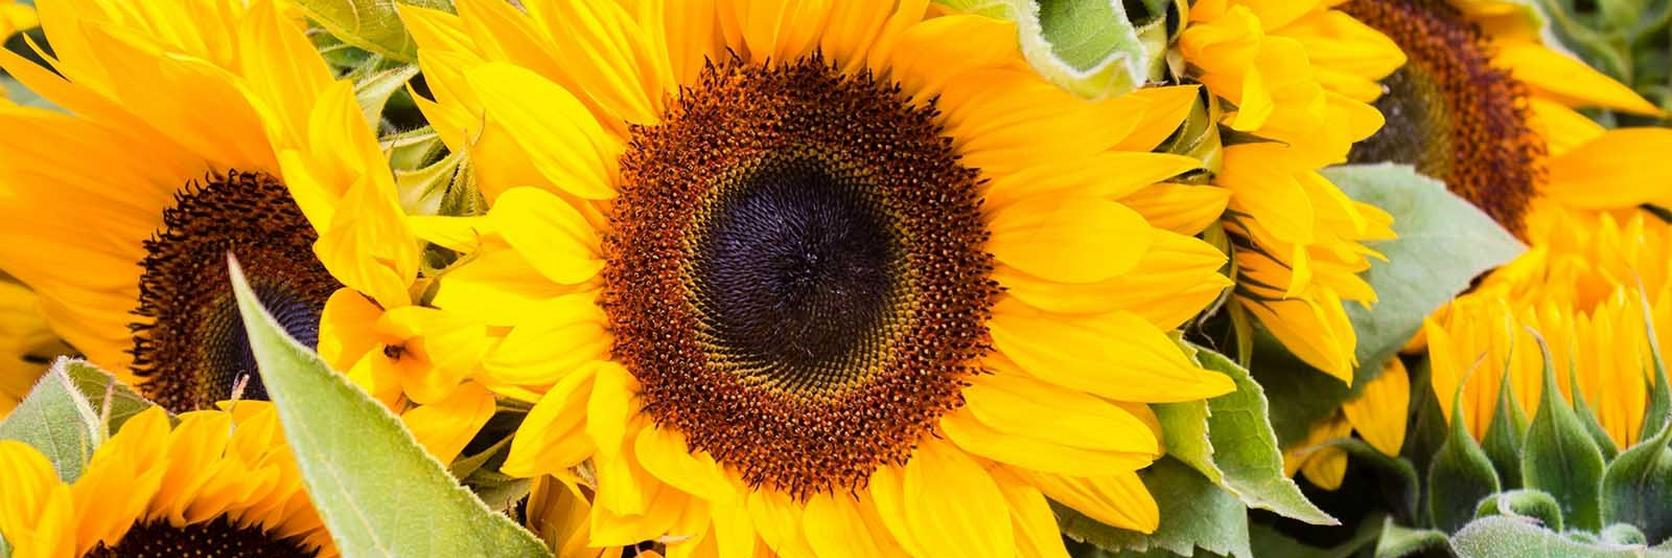 sunflower-facts-ultimate-flower-guide